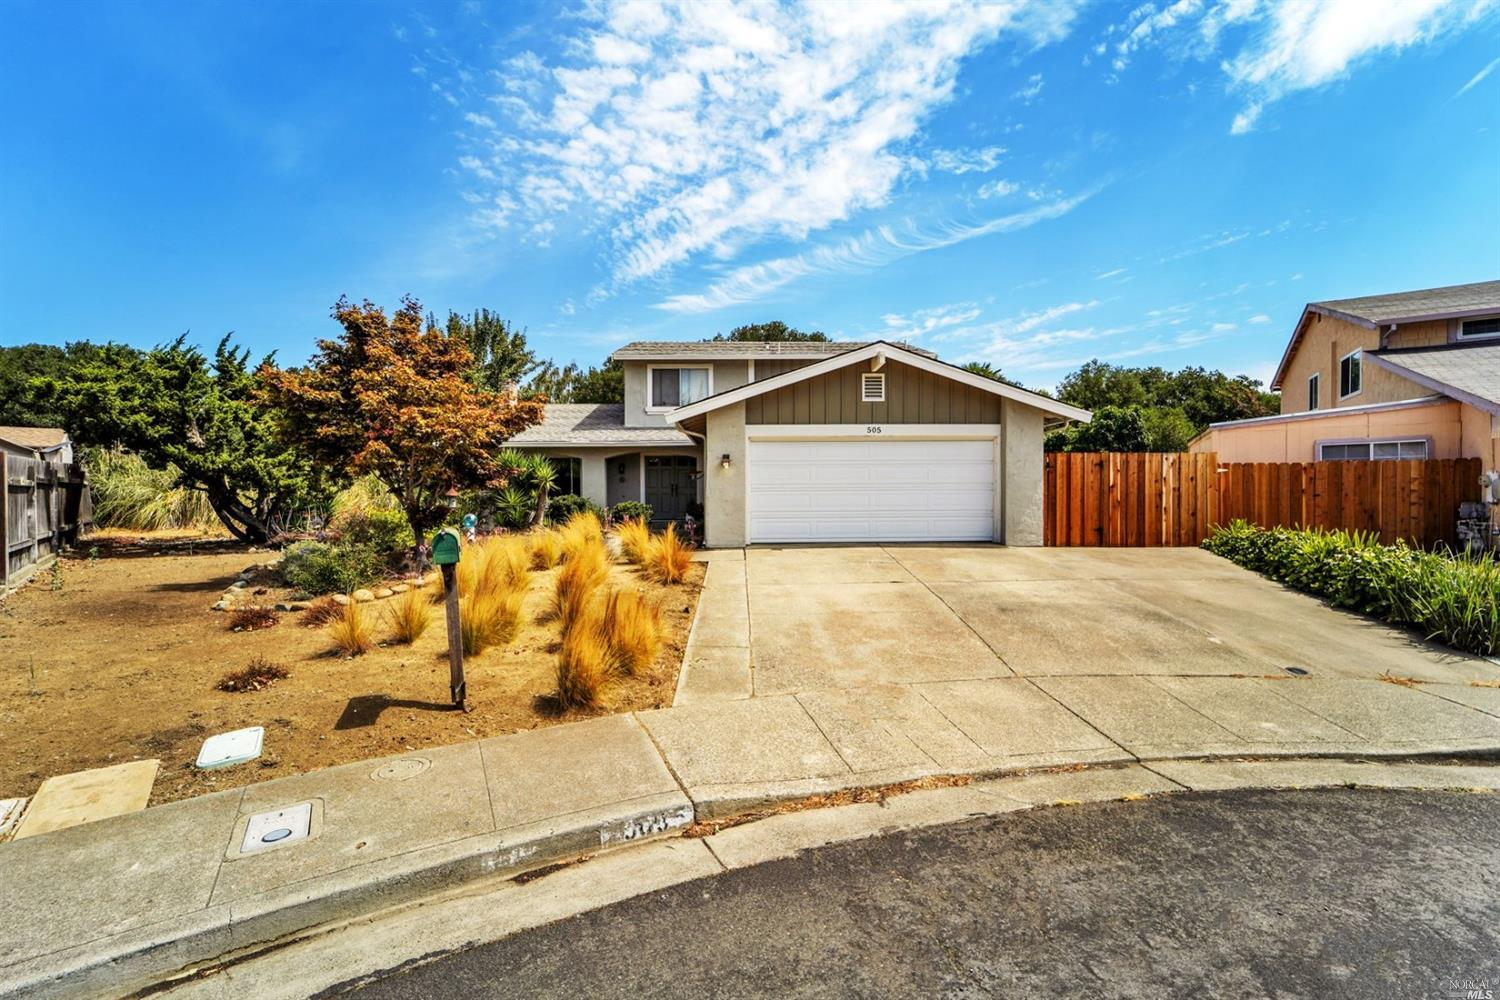 One of a kind home on a small cul-de-sac just a few blocks from highly-rated Henderson Elementary. T